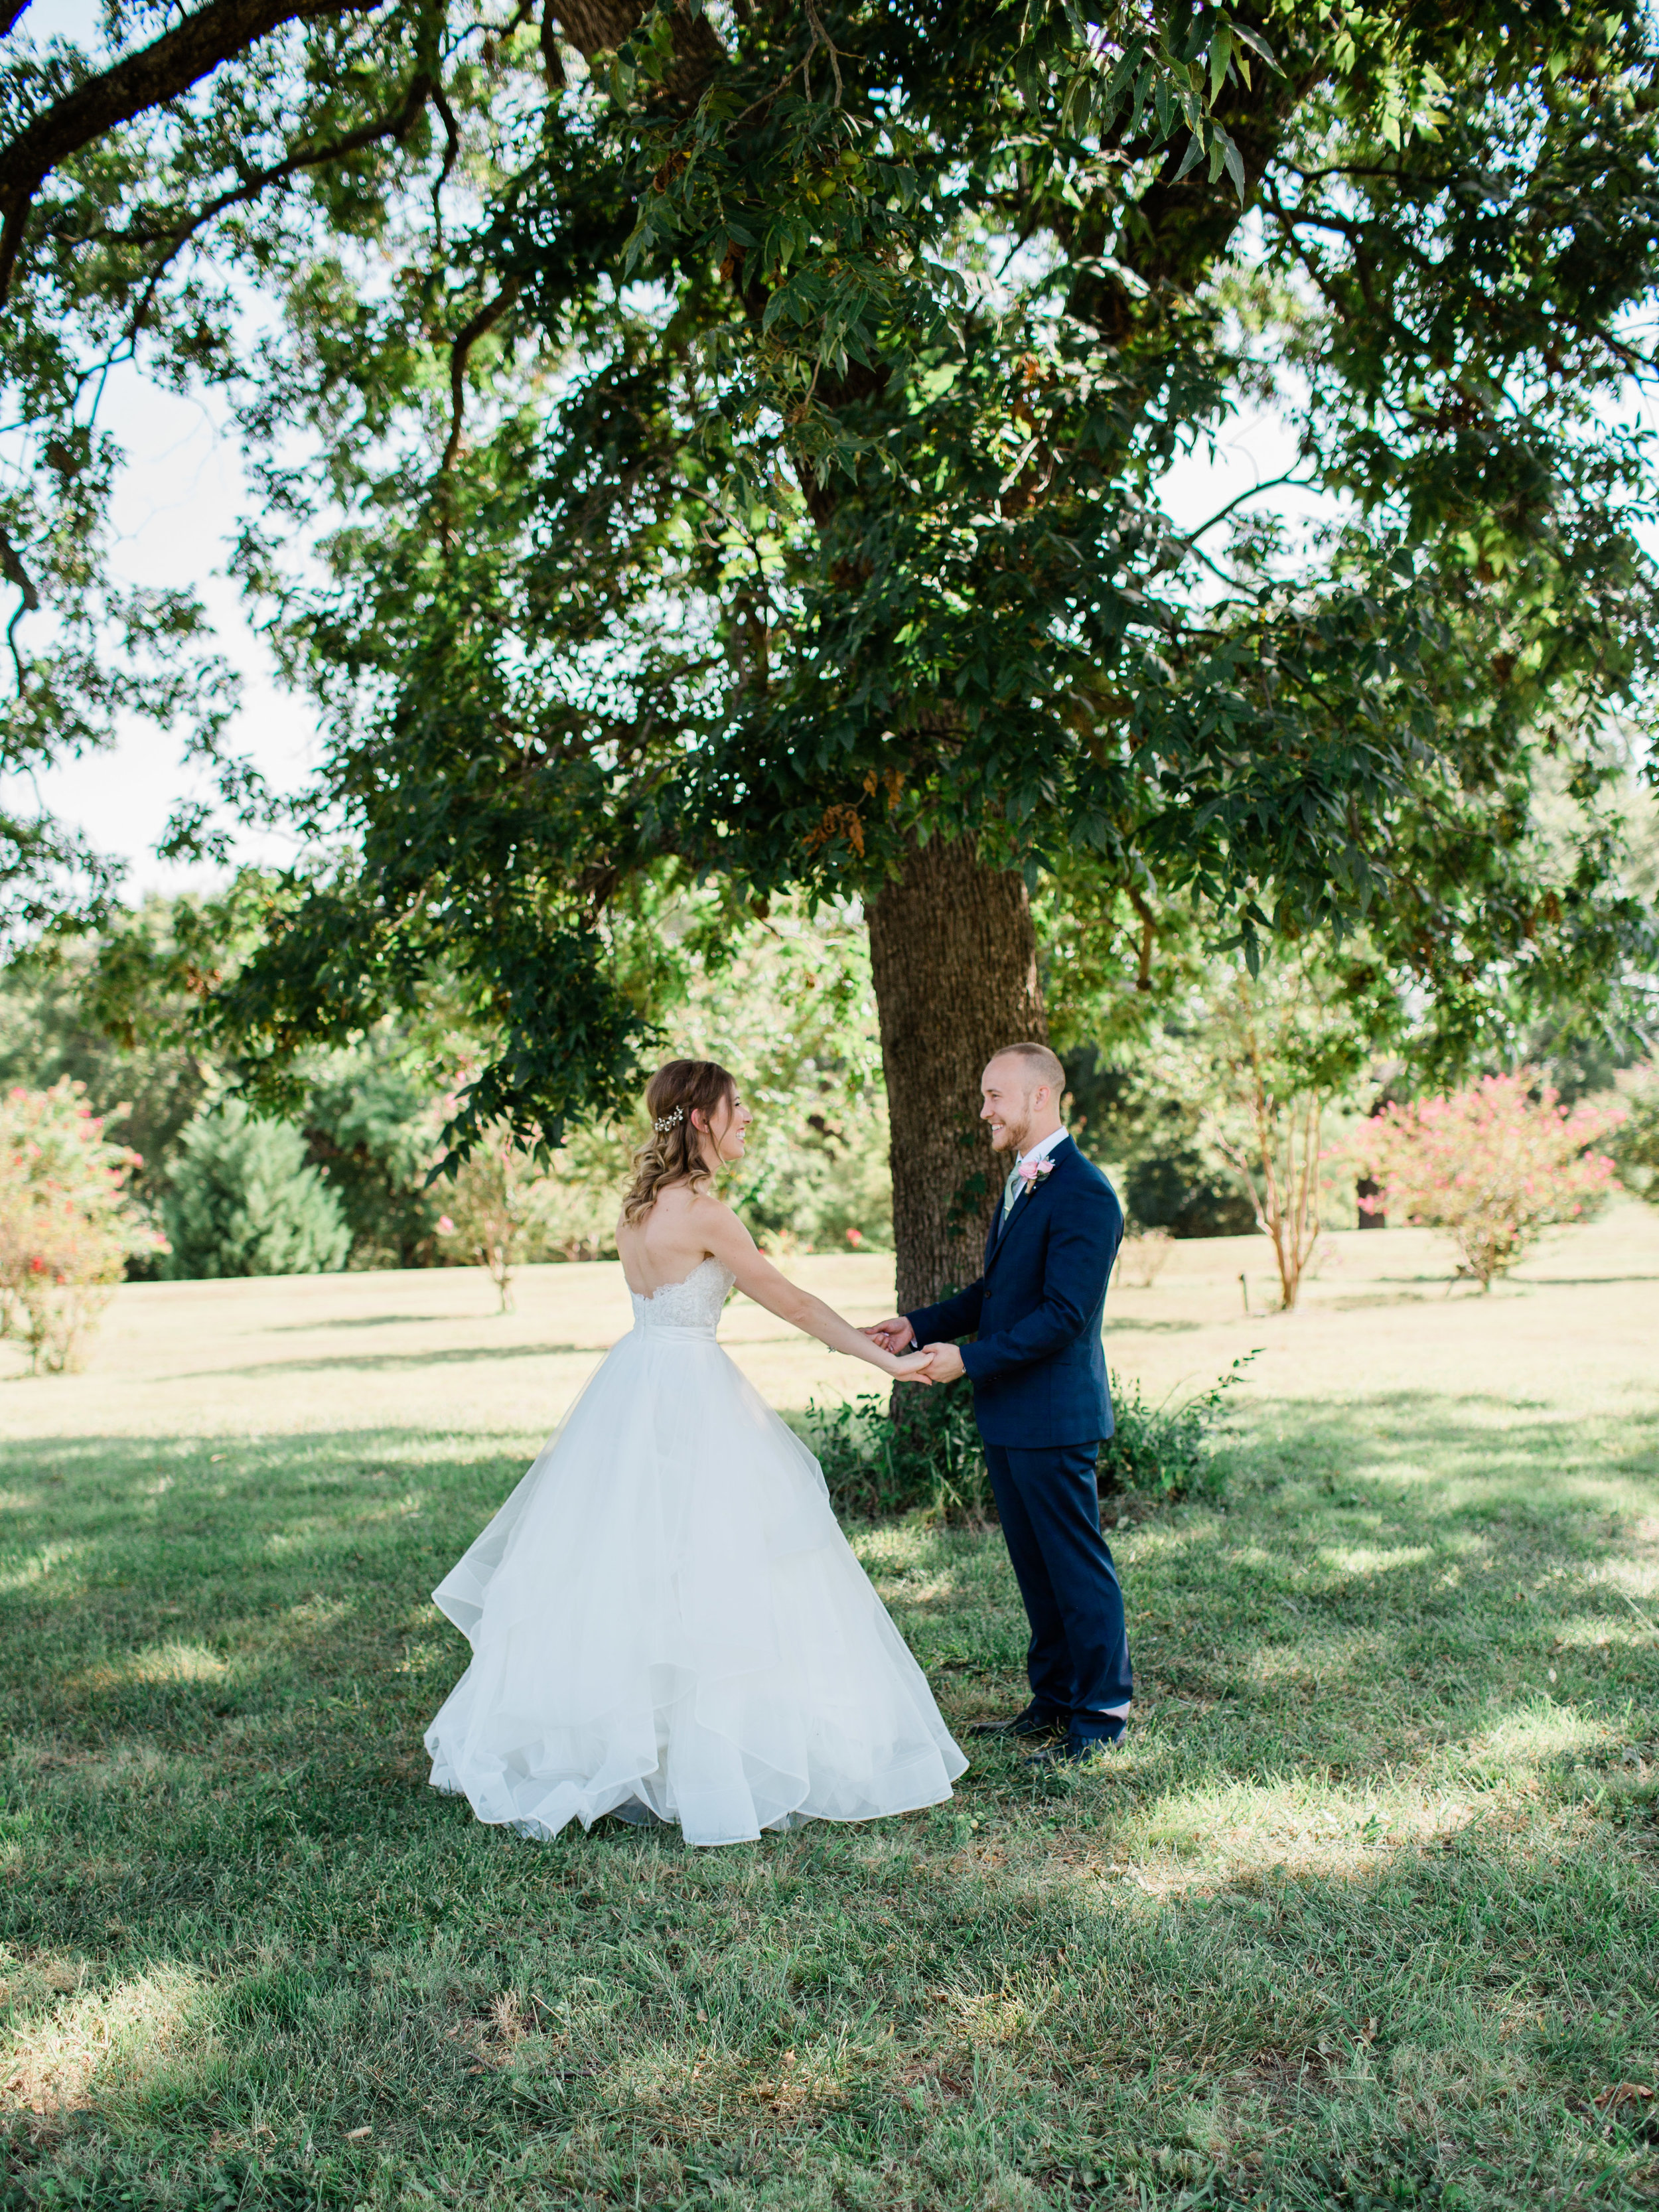 Adelia and Collin's first look at chandlers gardens wedding venue in dfw